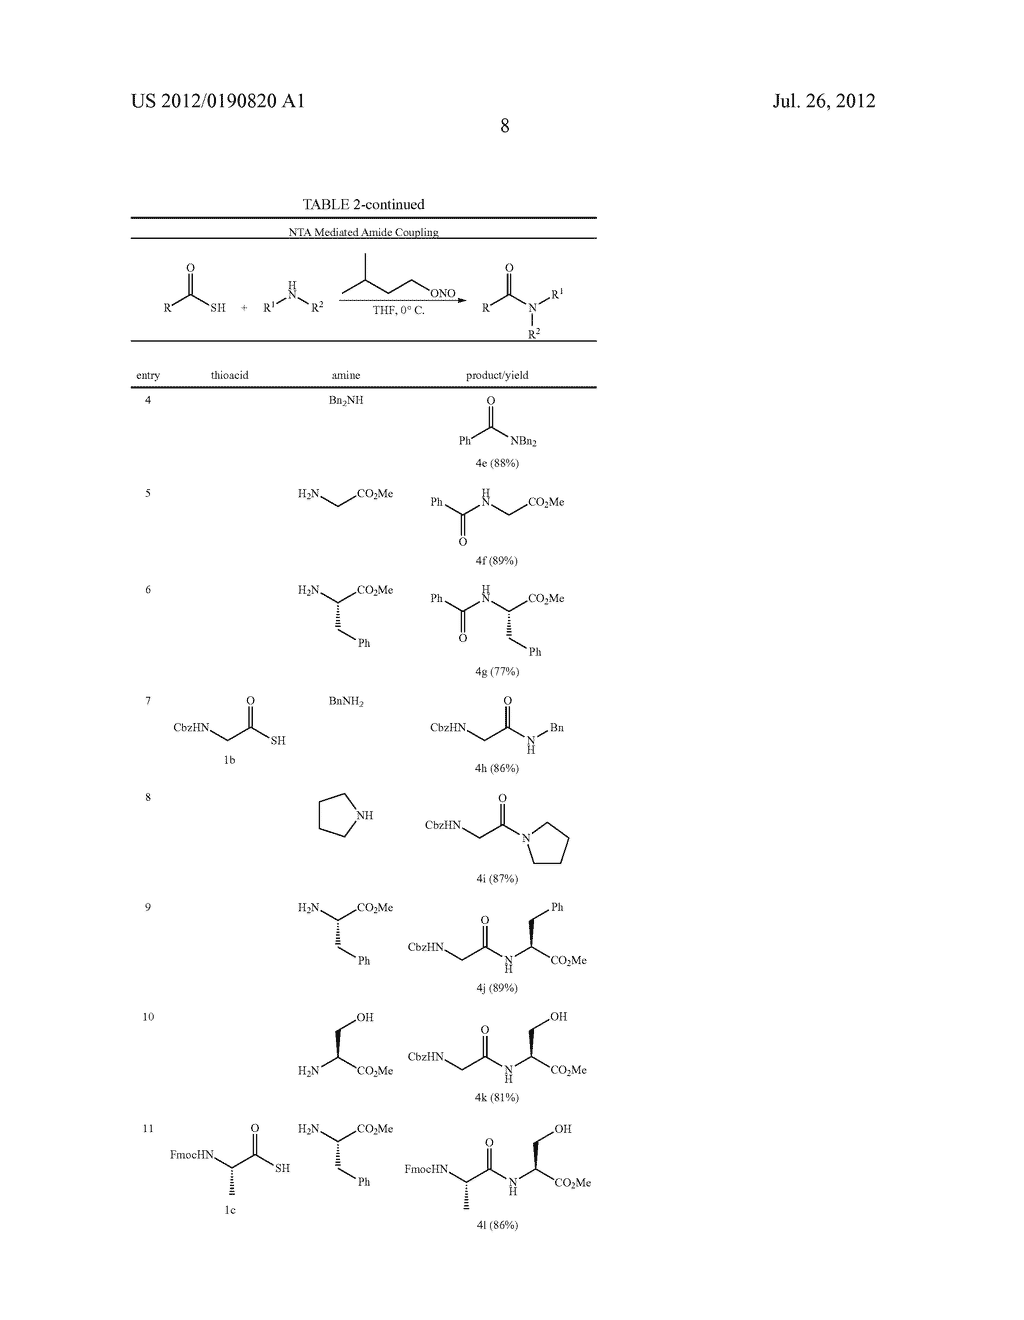 FACILE AMIDE FORMATION VIA S-NITROSO THIOACID INTERMEDIATES - diagram, schematic, and image 10